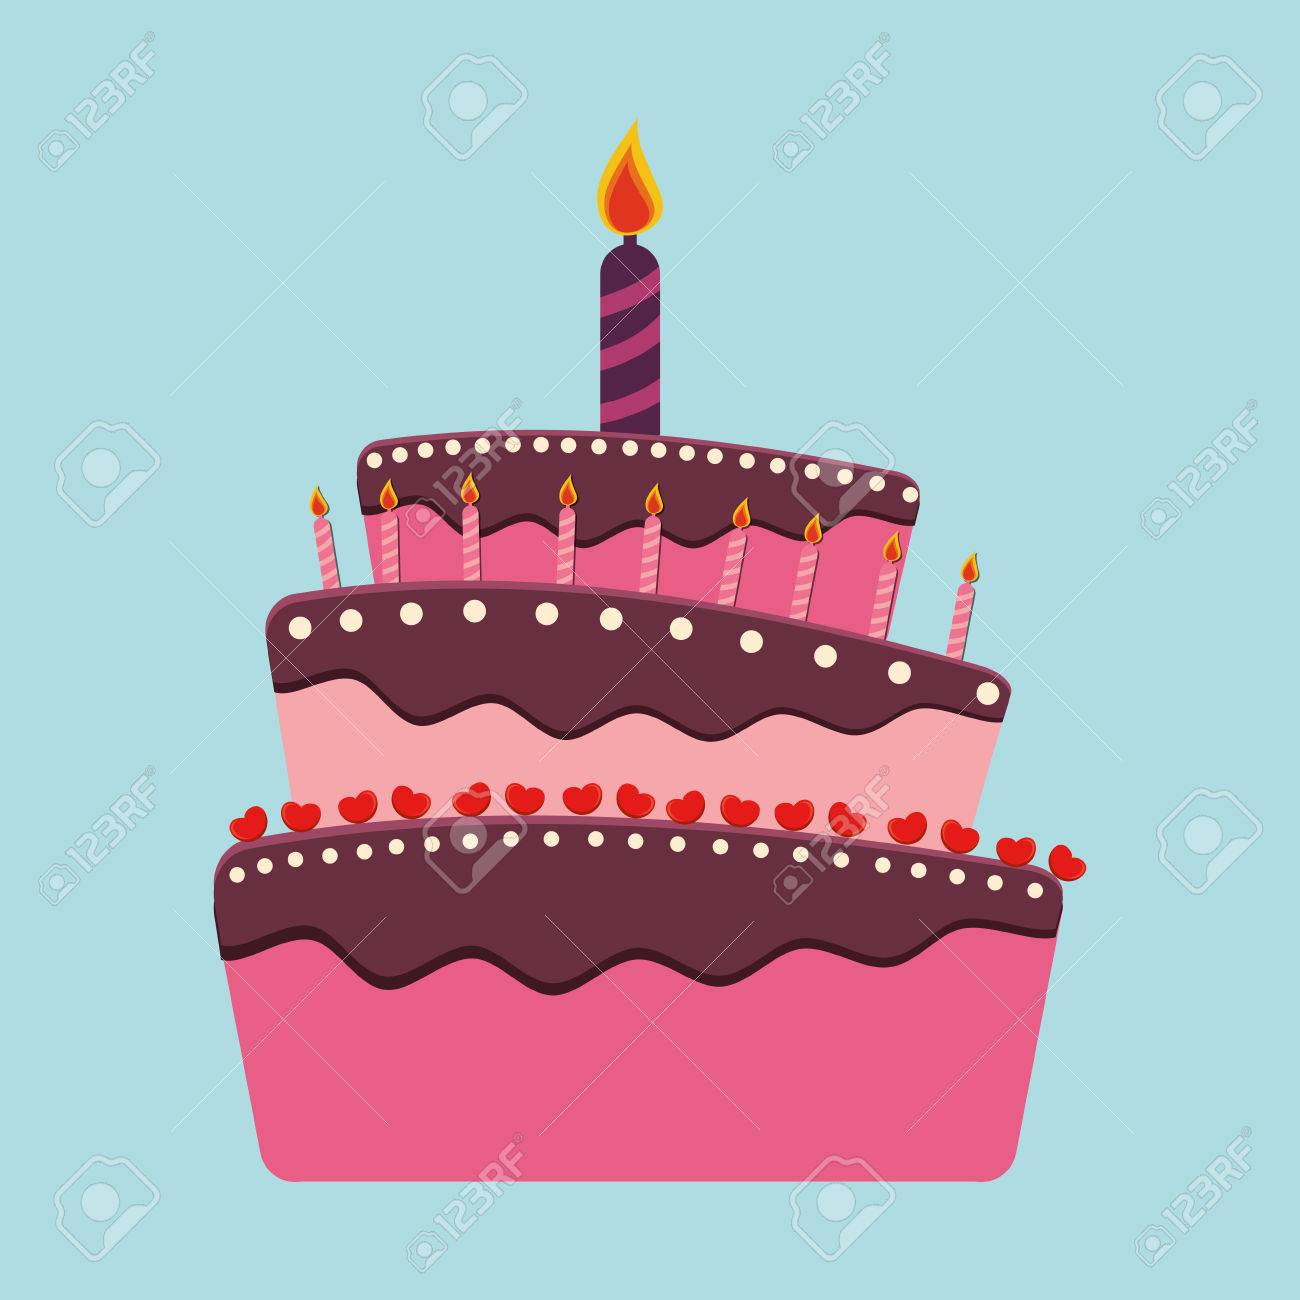 hight resolution of birthday cake and desserts icon design vector illustration